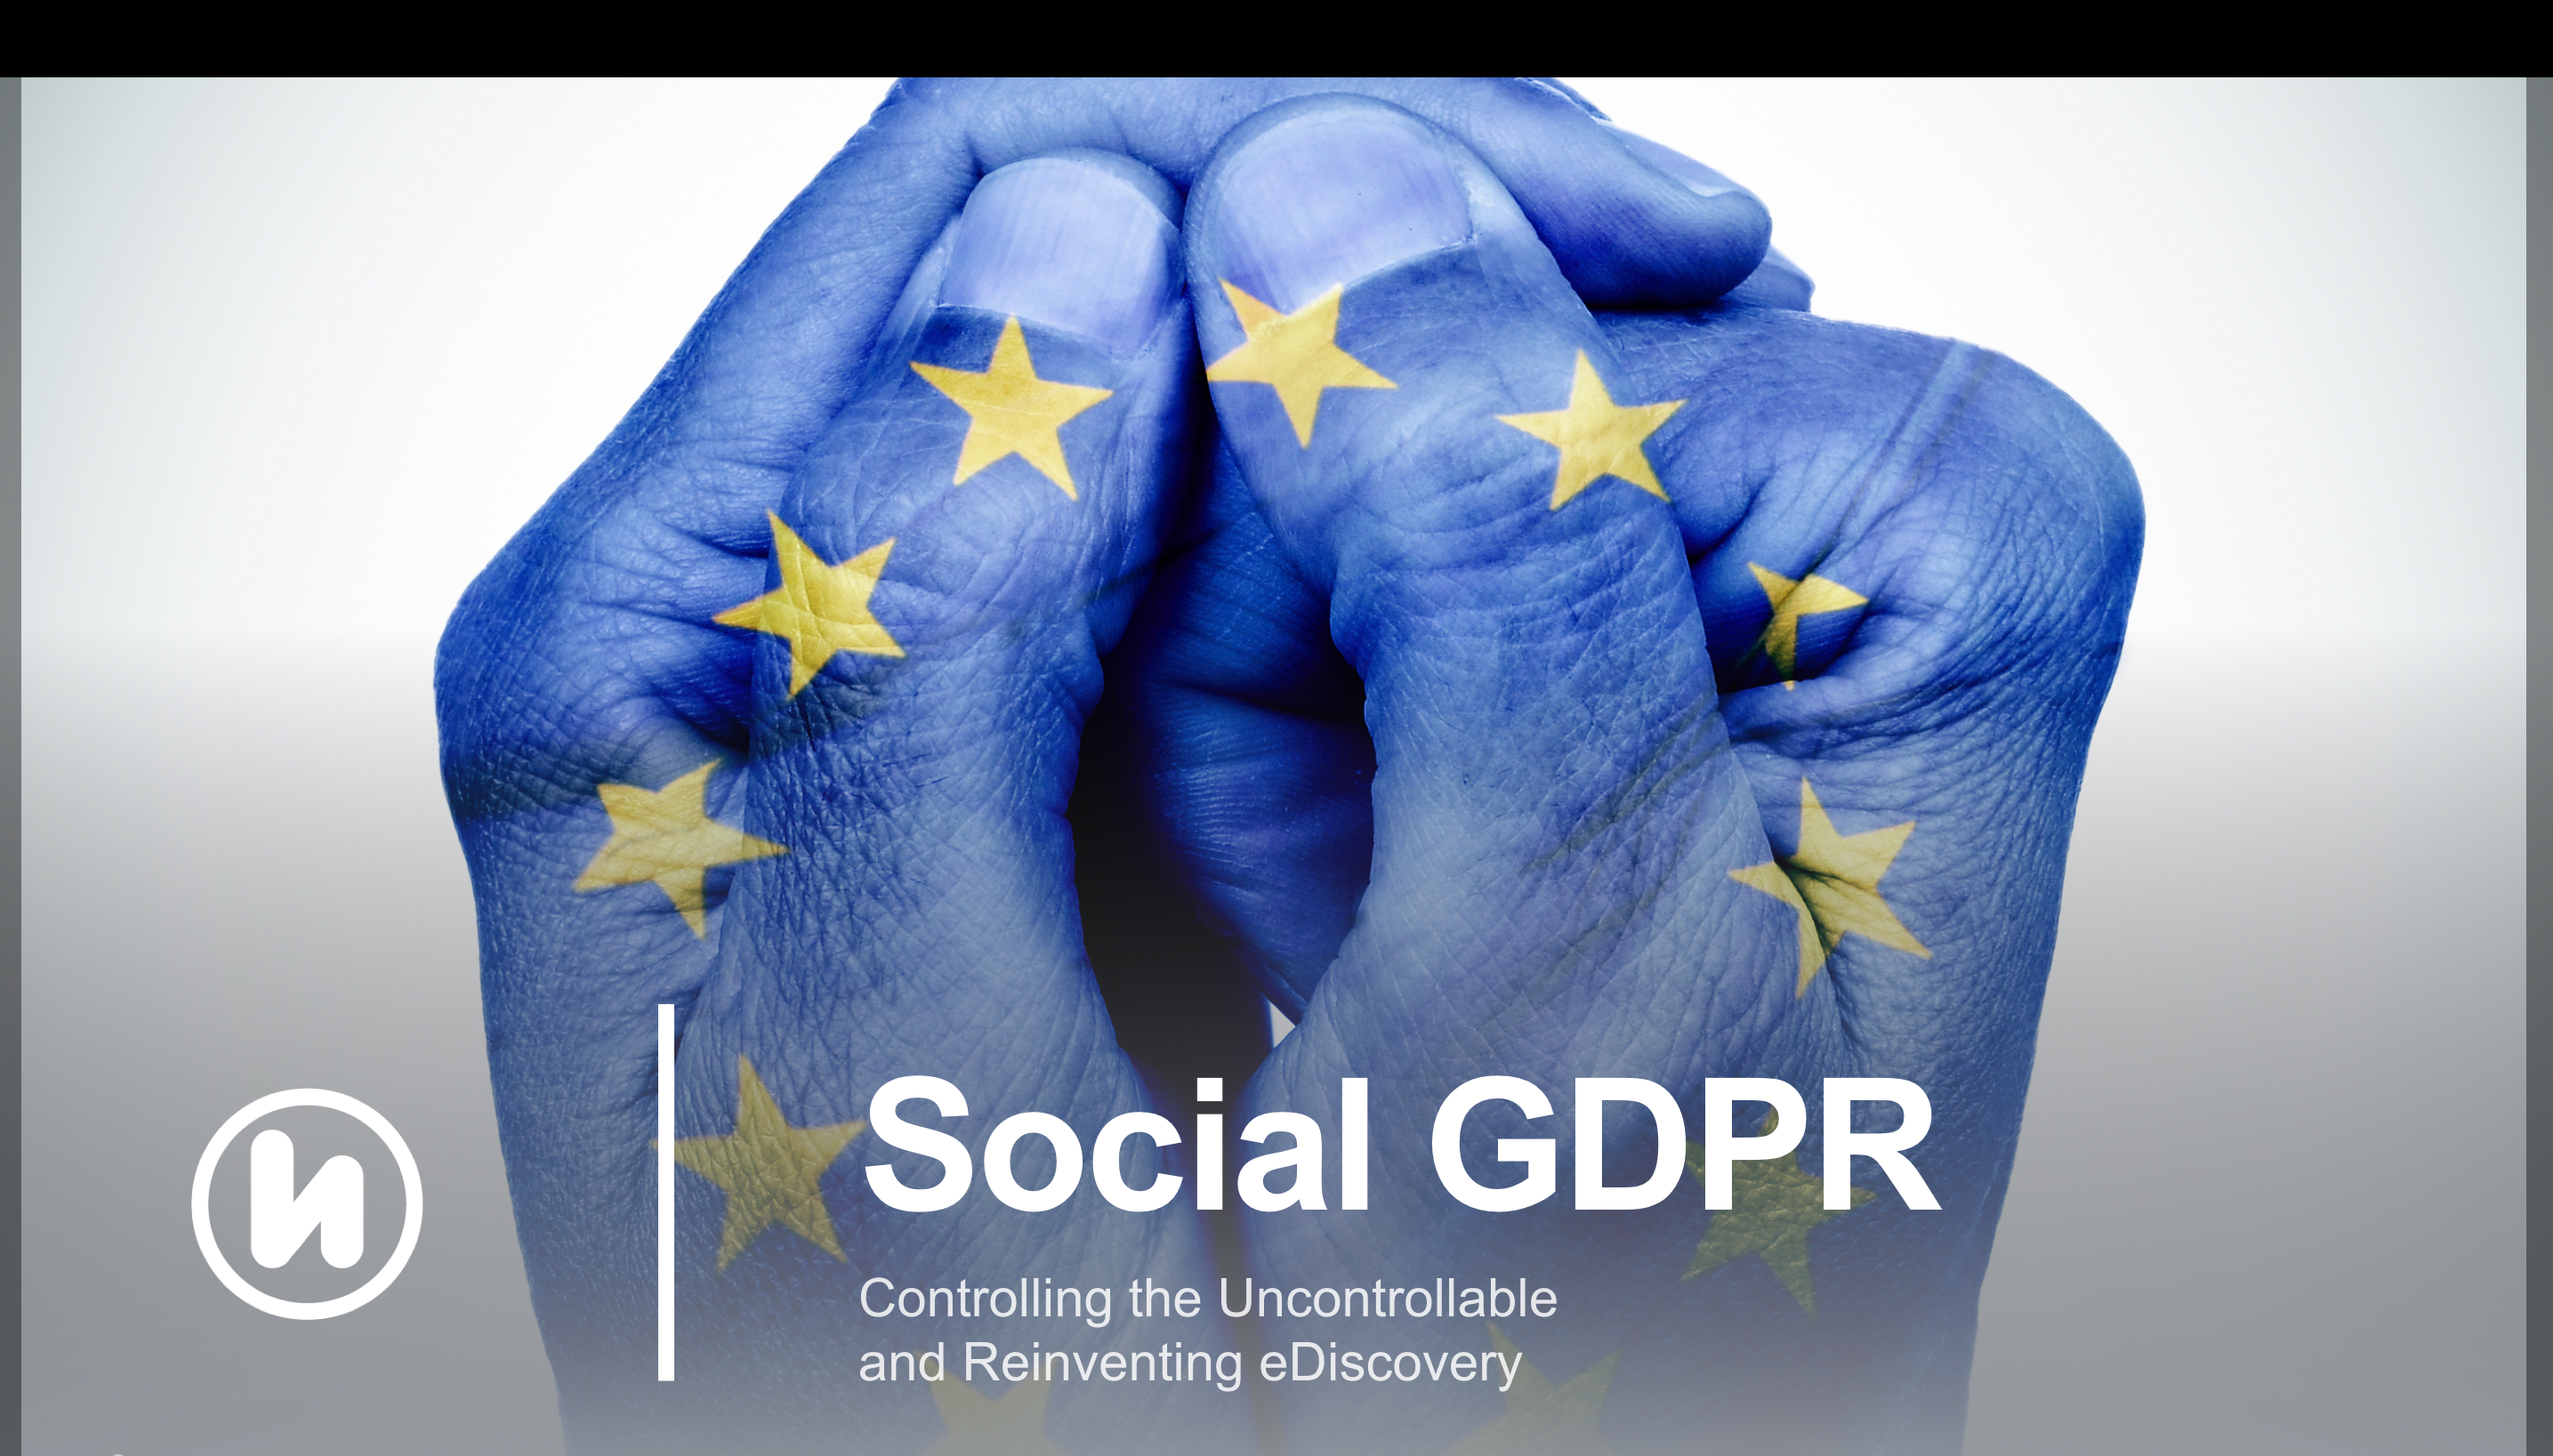 Webinar: Social GDPR: Controlling the Uncontrollable and Reinventing eDiscovery